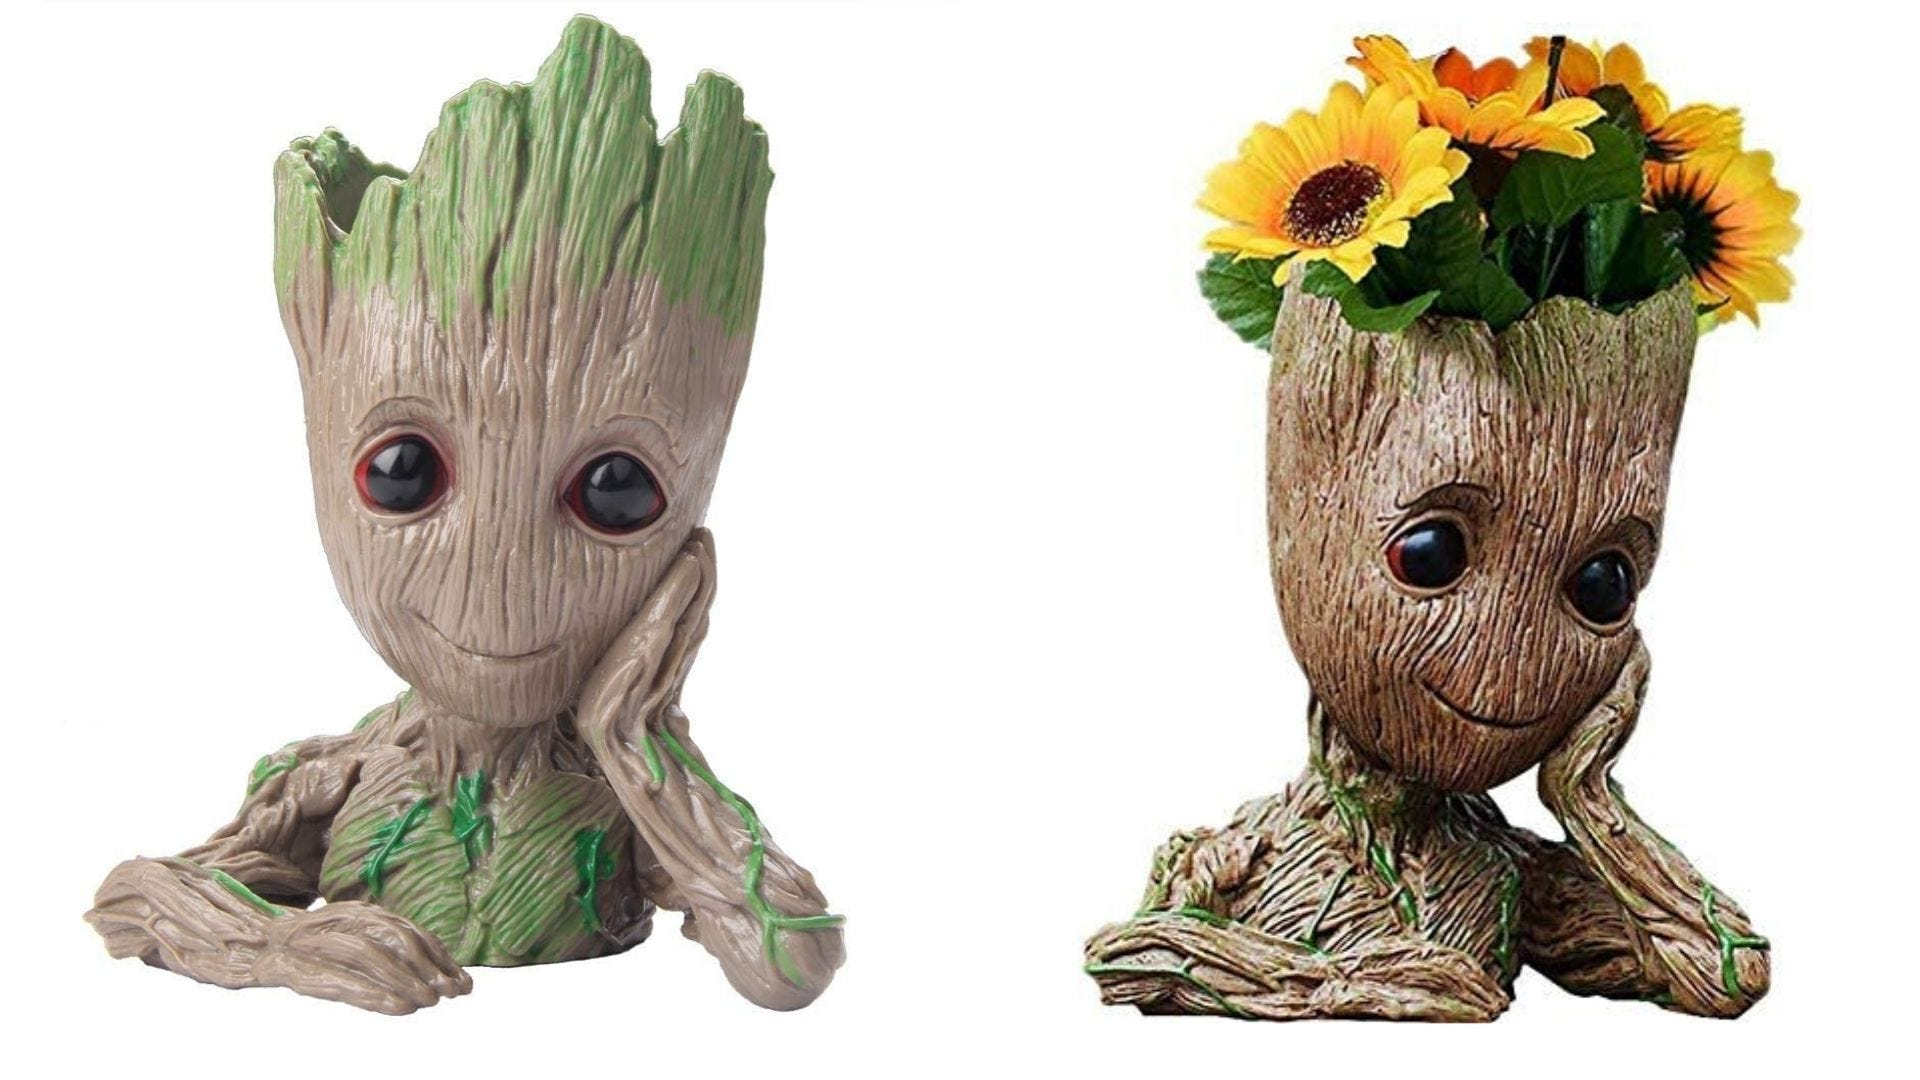 Two angles of a Baby Groot flower pot